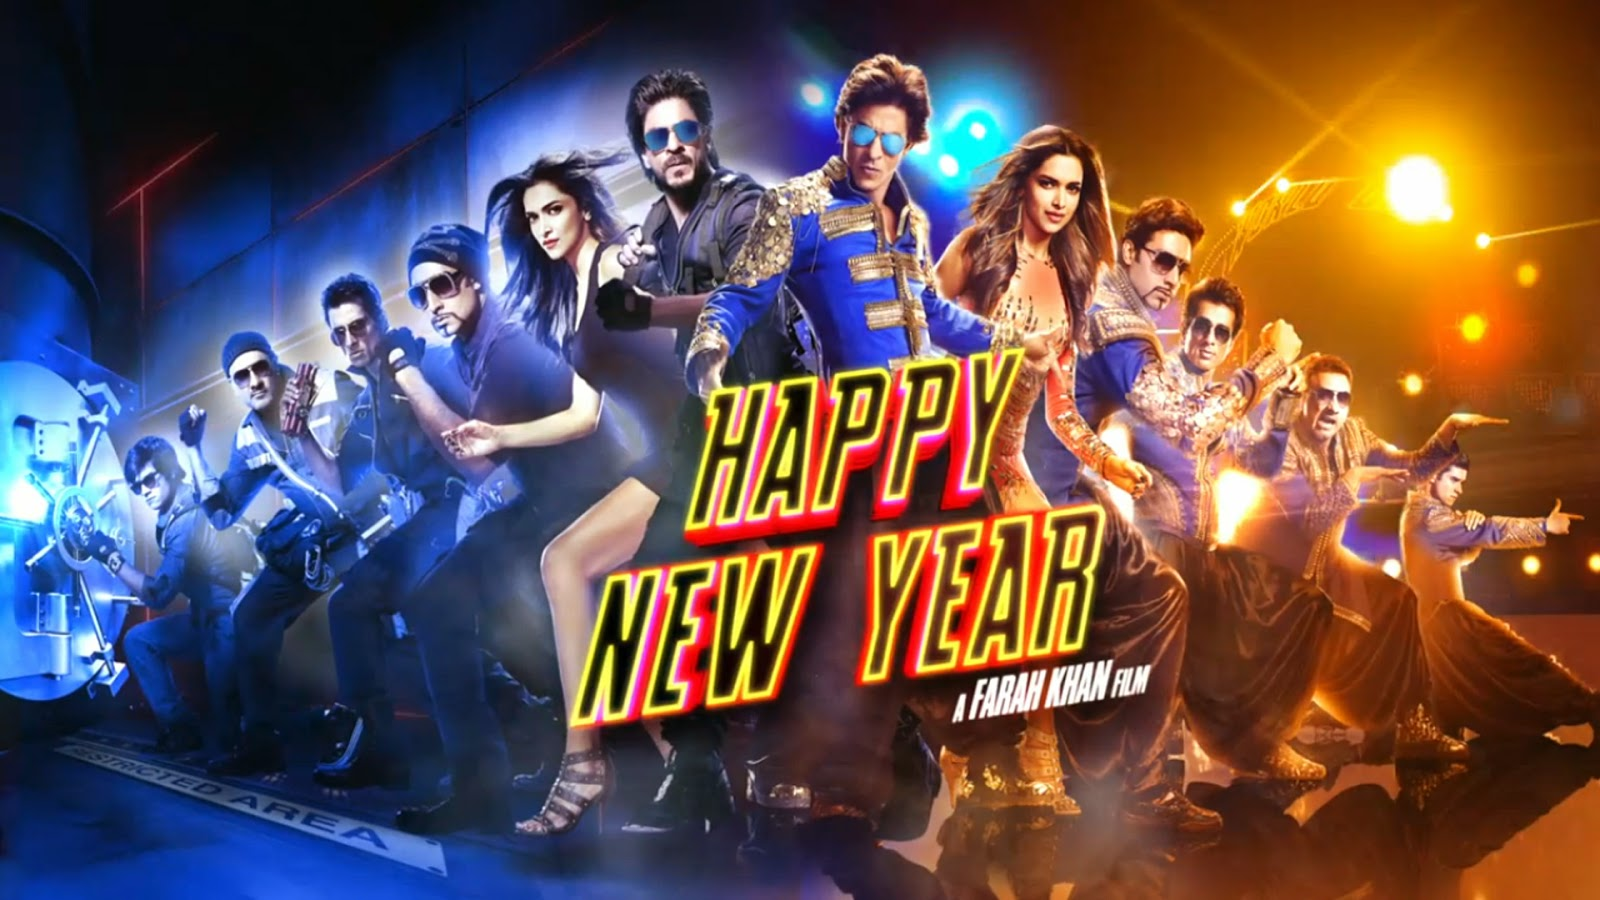 Movie happy new year Dance poster 2014 (Actor and Actress Hd Wallpaper)